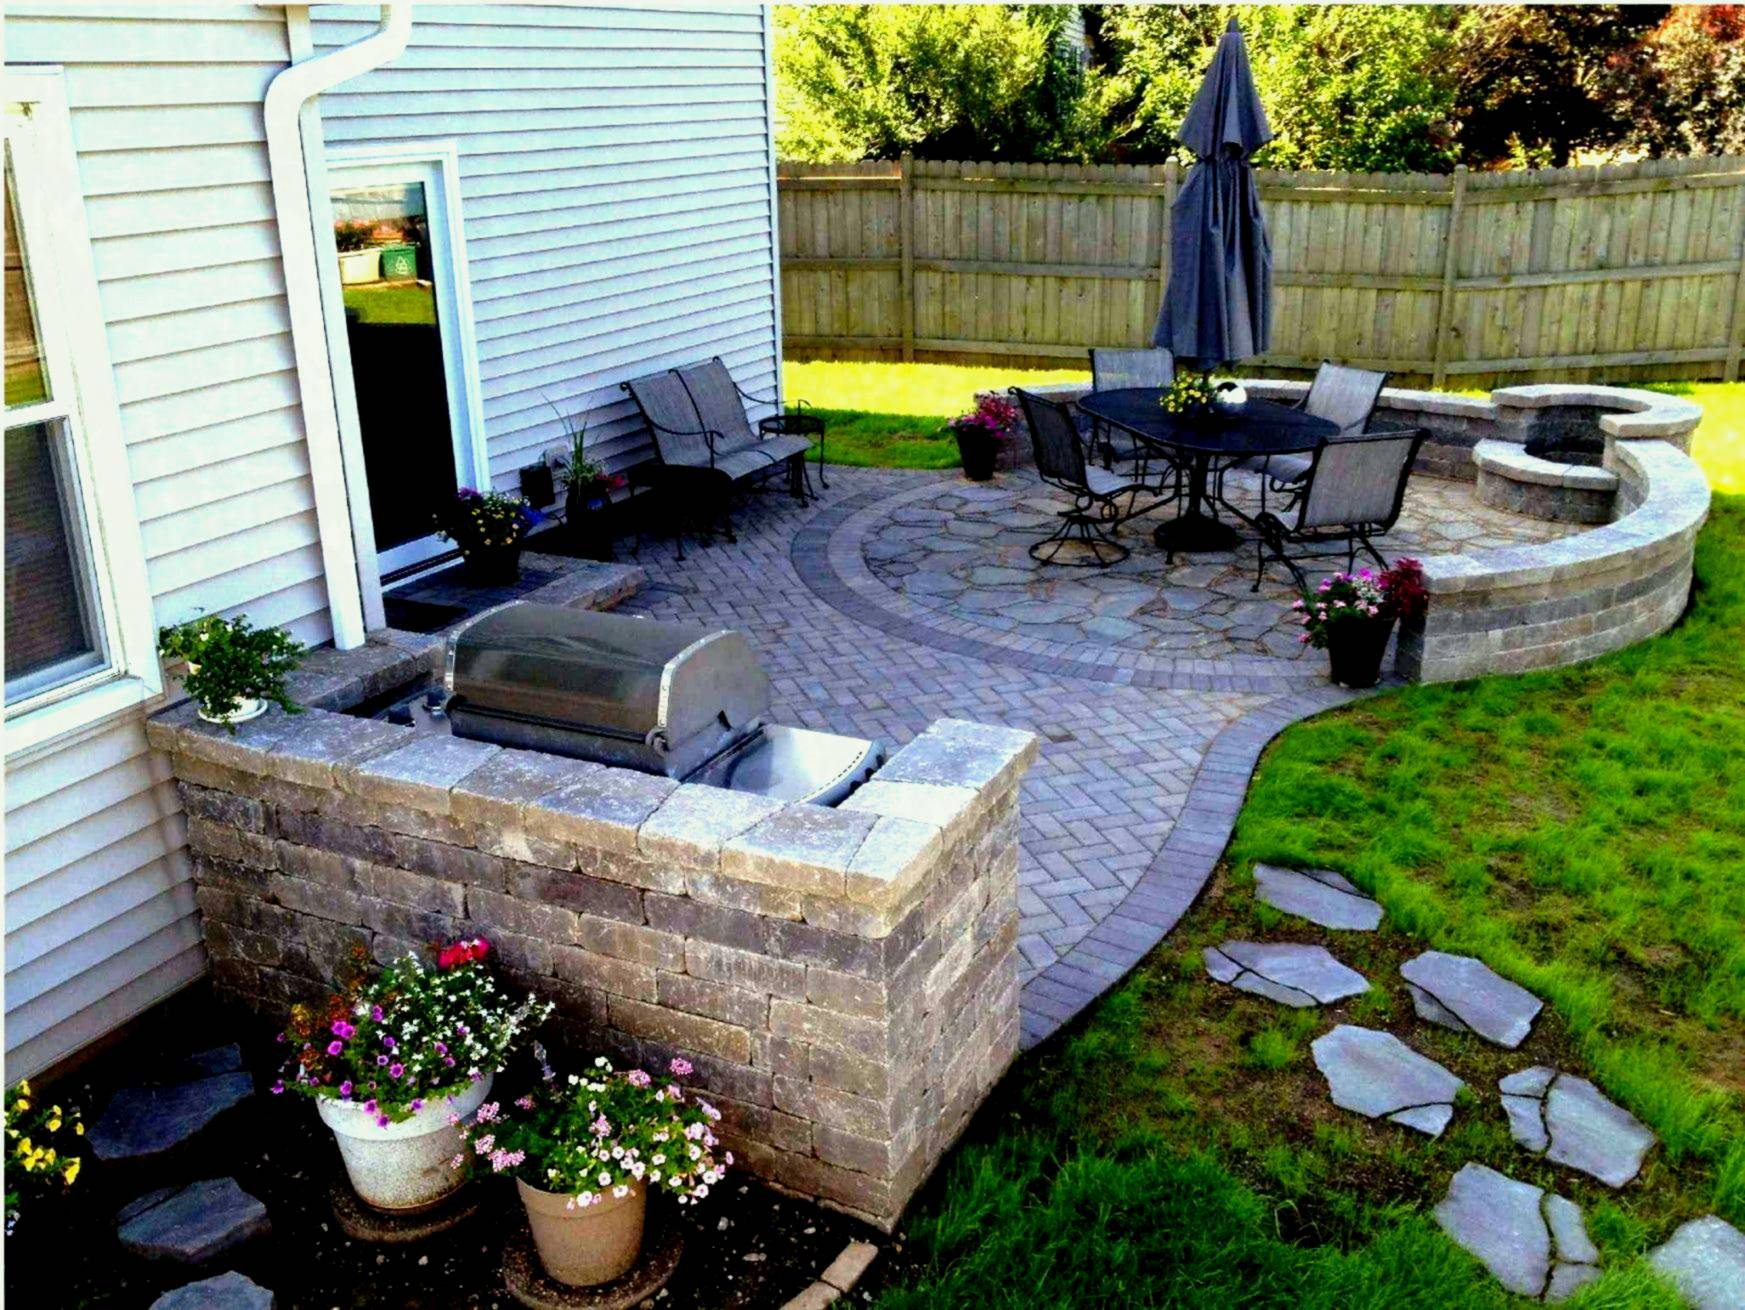 Inspirational 30 Awesome Interactive Backyard Design Tool Plan | Newyorkrevolution within Backyard Design Tool